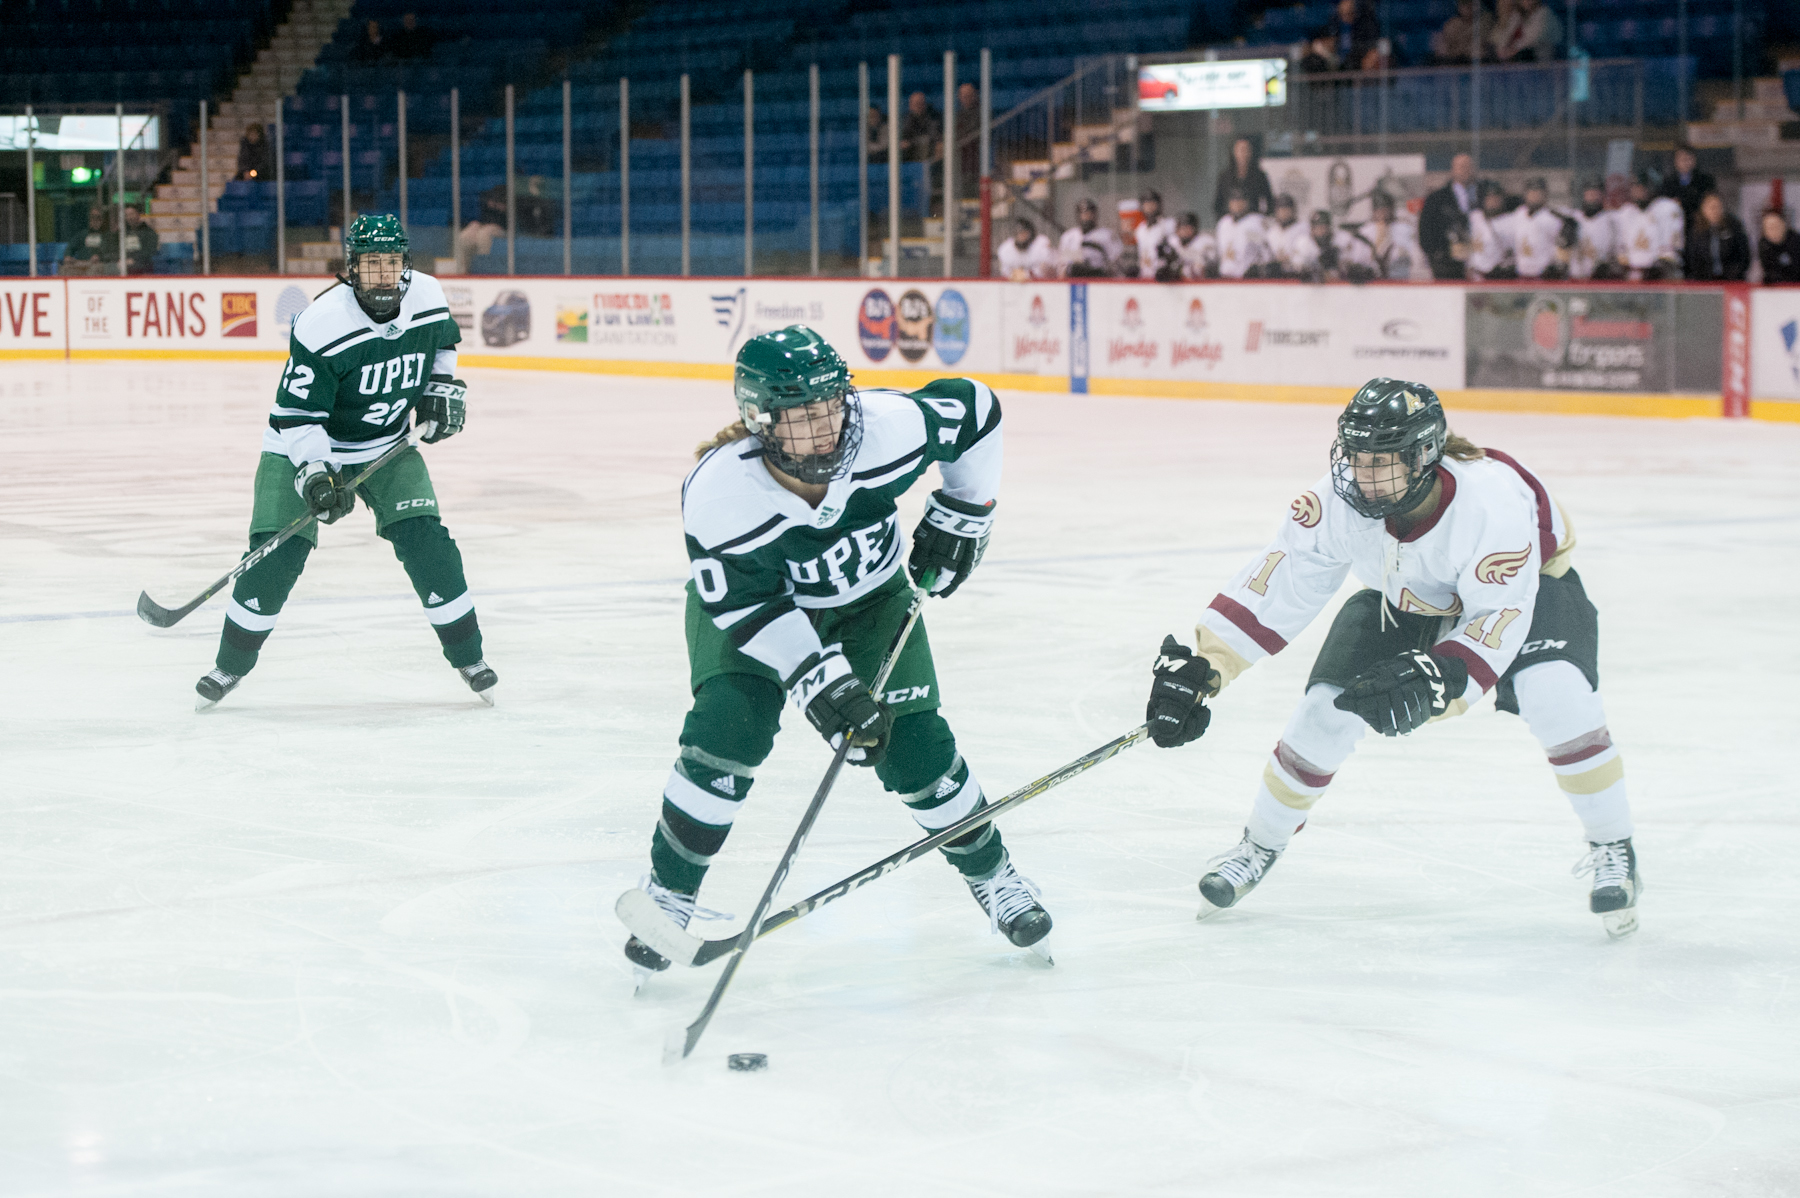 Panthers explode for five third-period goals in shutout win over Mount Allison